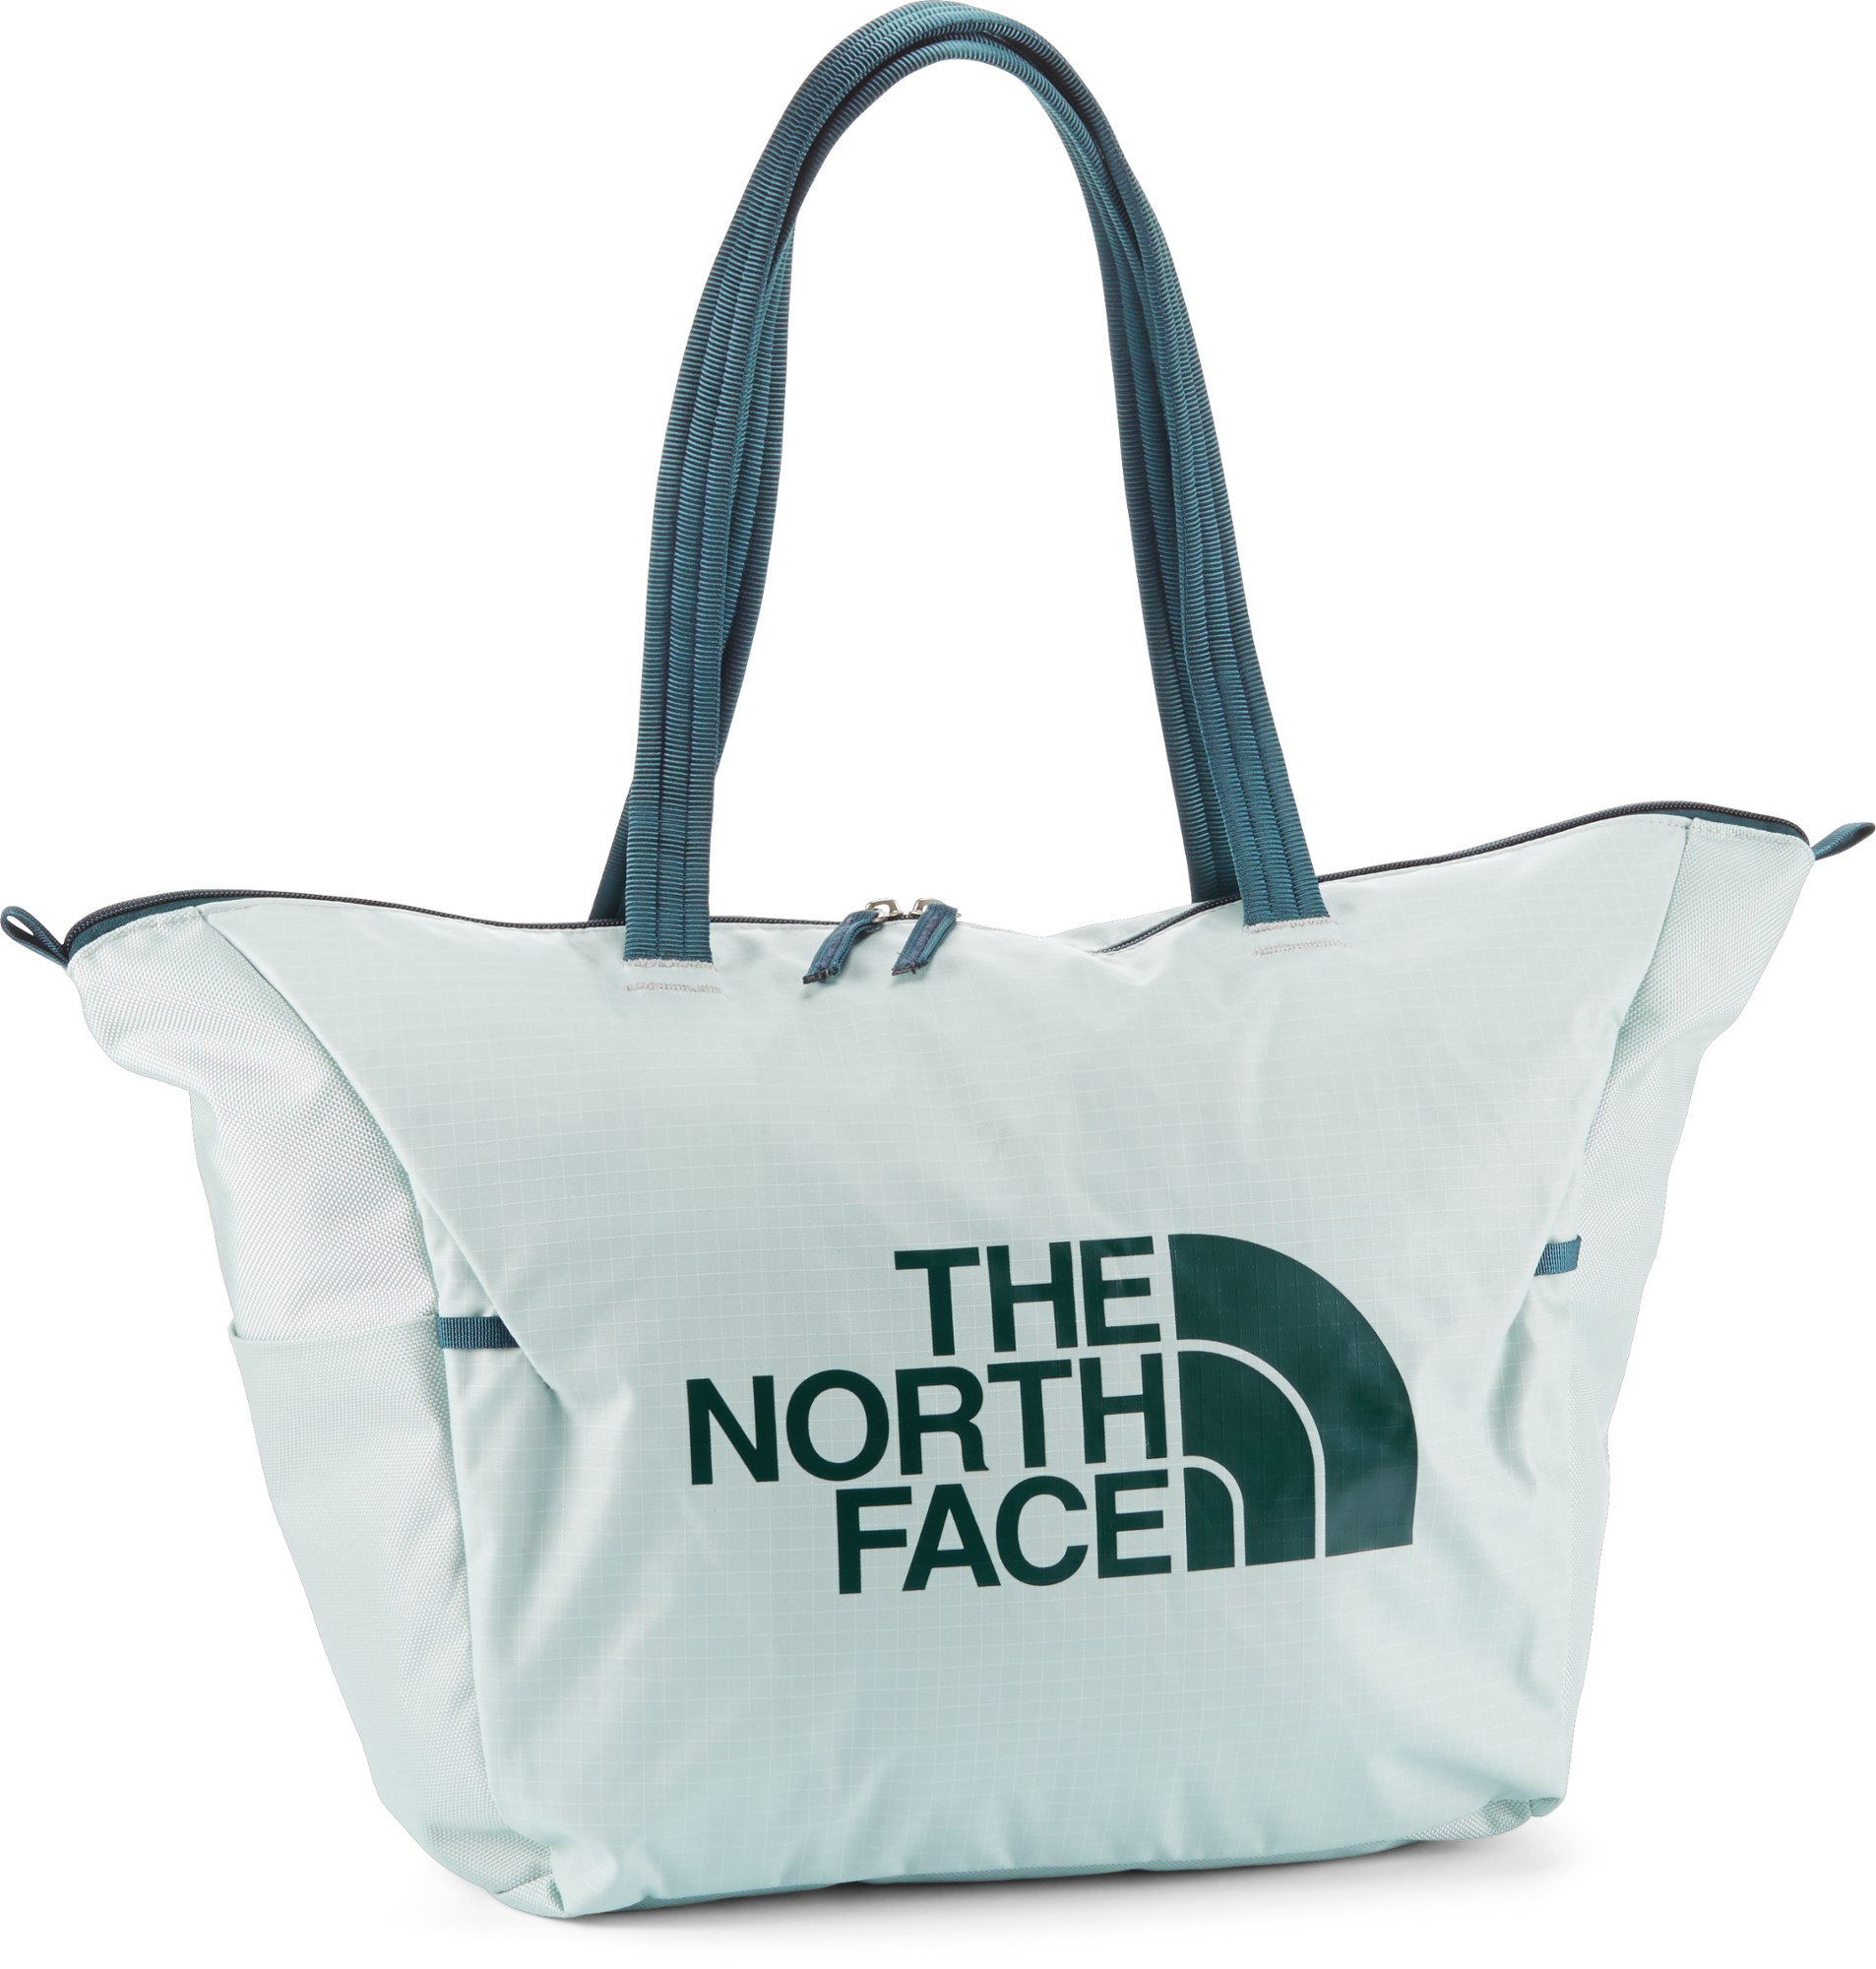 The North Face Stratoliner Tote